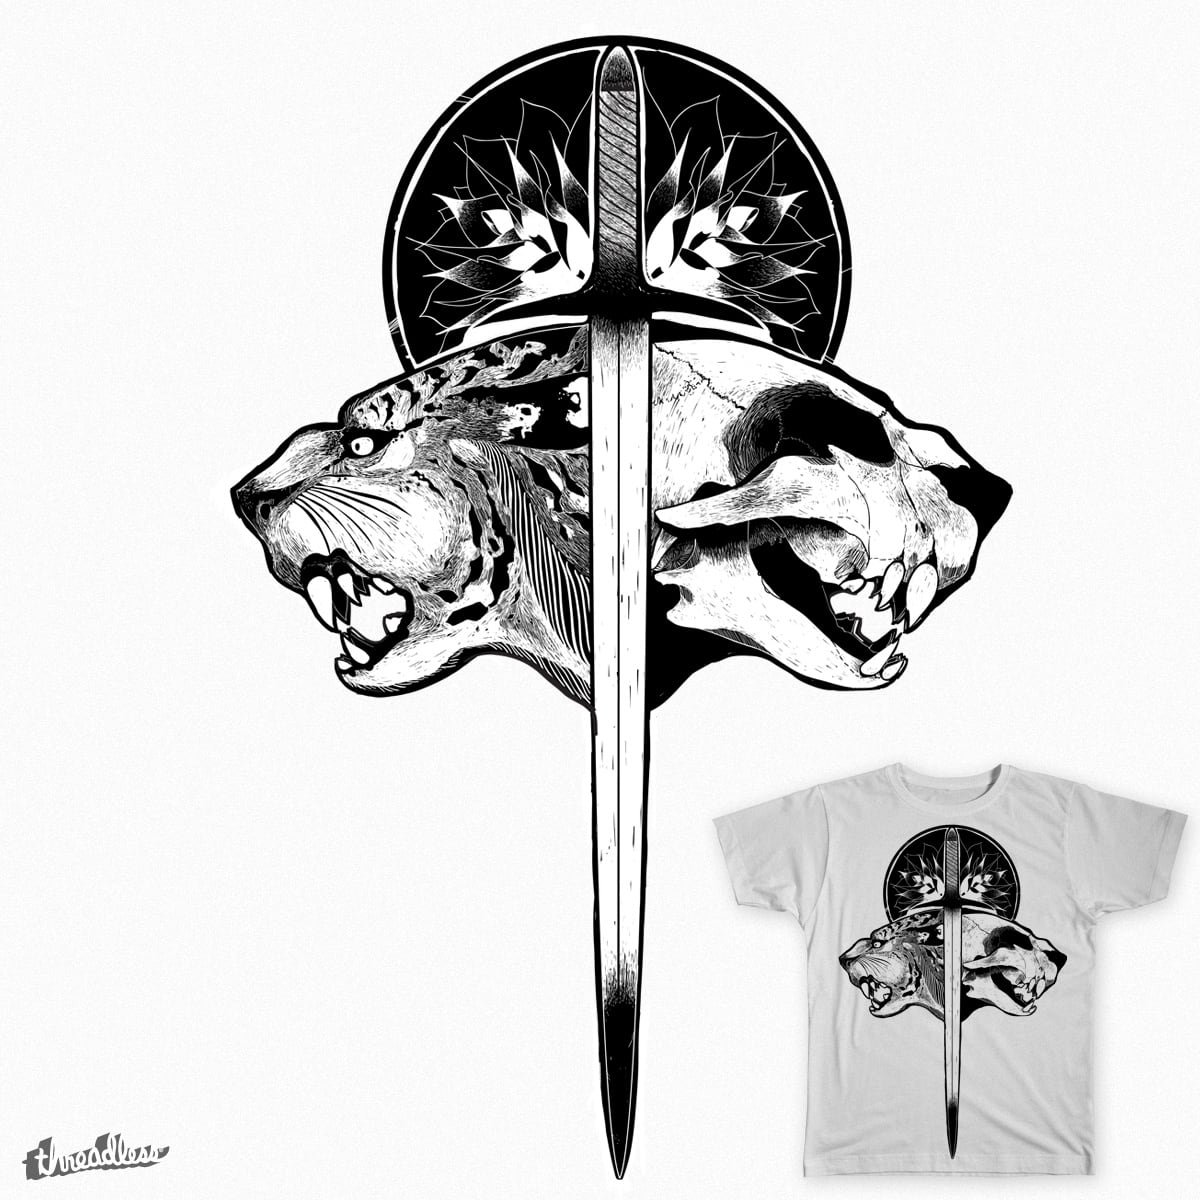 By the Sword by kyle.bigger.9 on Threadless